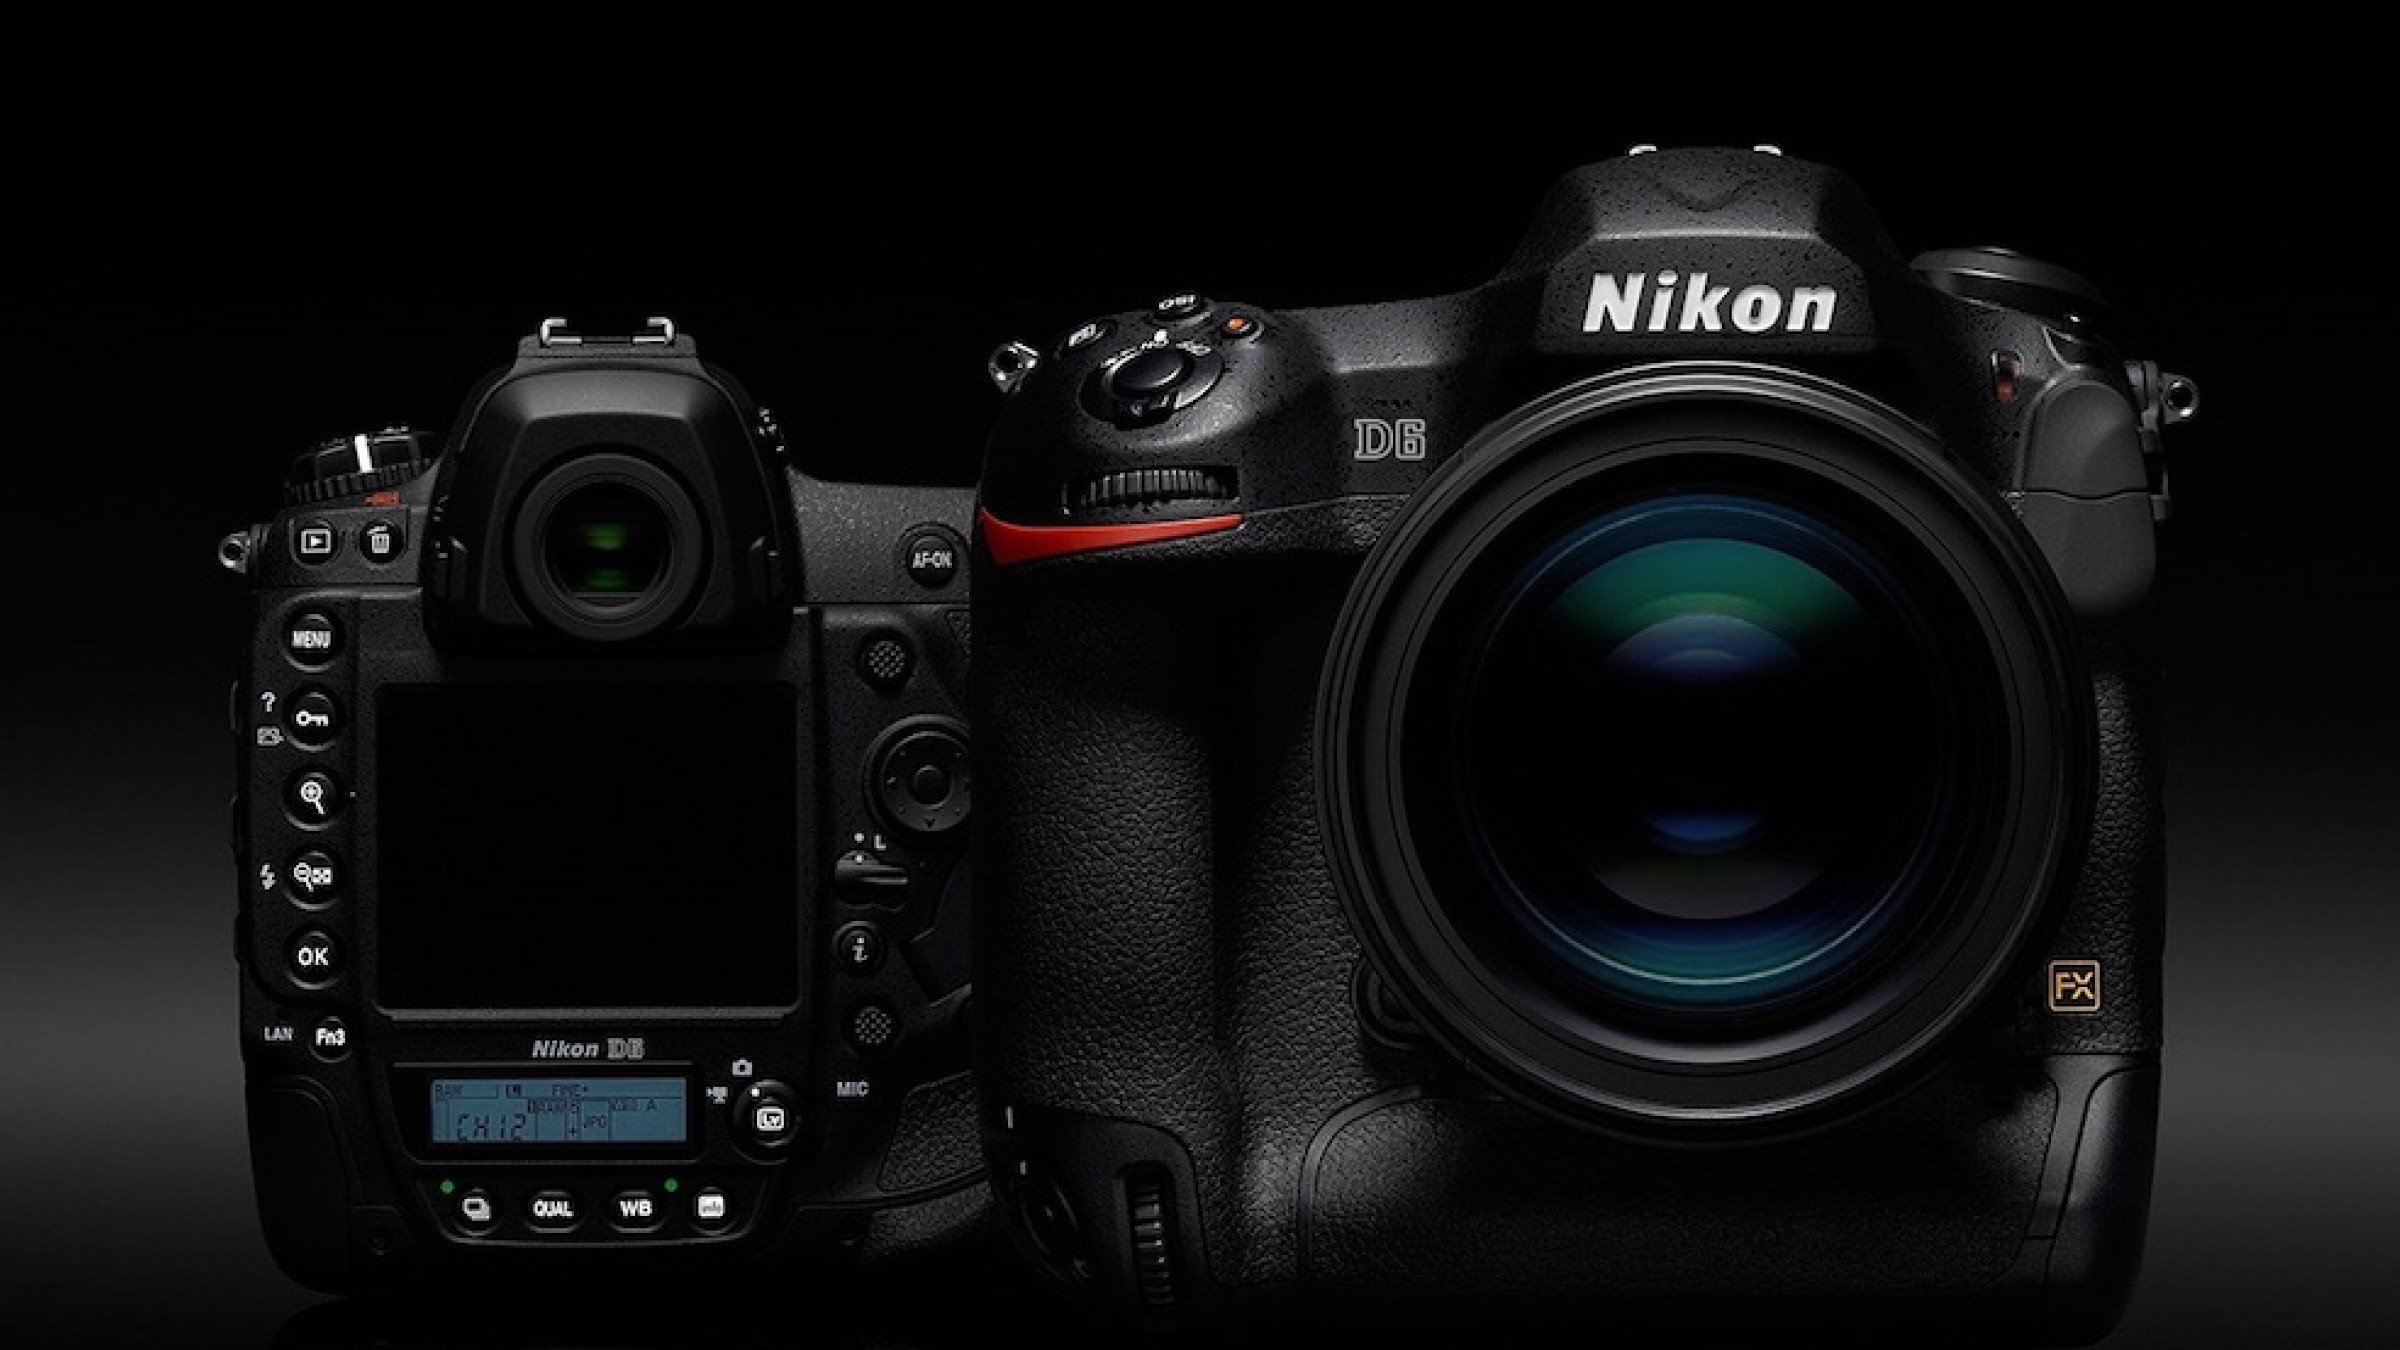 Nikon's D6 was Designed with Sports Photography in Mind